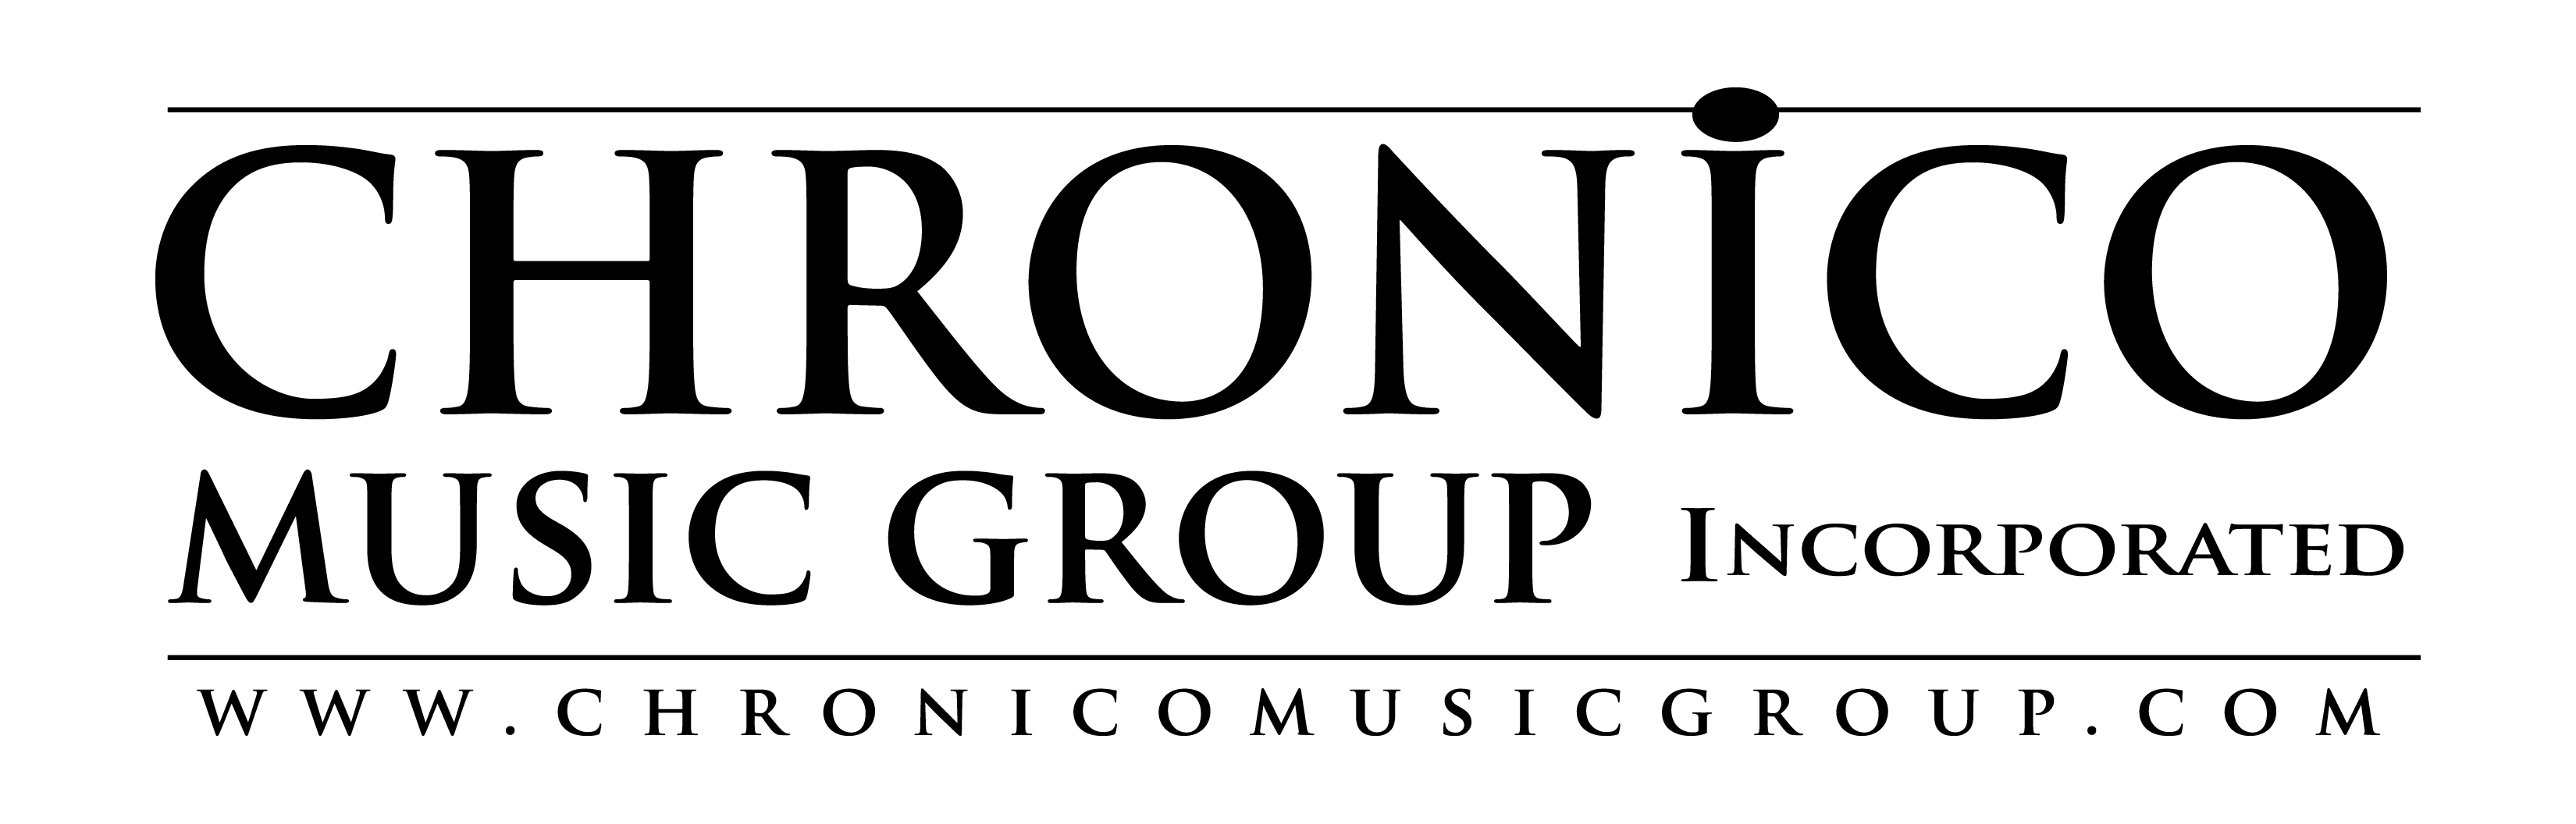 Chronico Music News